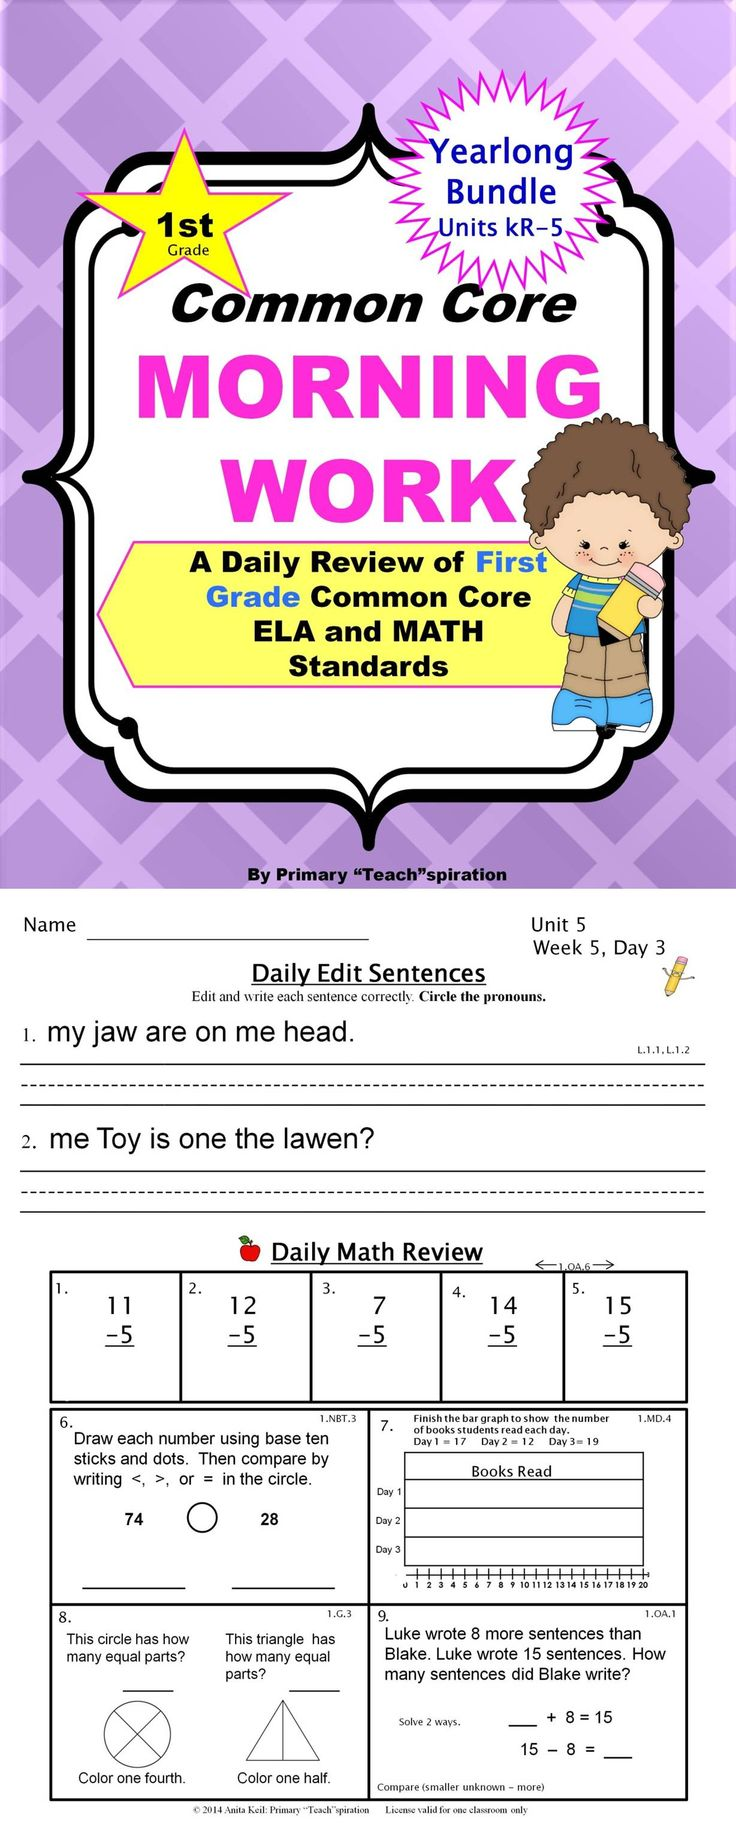 Wow! Check out this $-Saving Yearlong Bundle! Includes all six 1st Grade Common Core Morning Work Units! A comprehensive daily spiral review. Your kids won't forget what they learn! Every problem is coded with its ELA & Math CCSS. Complete answer keys! $